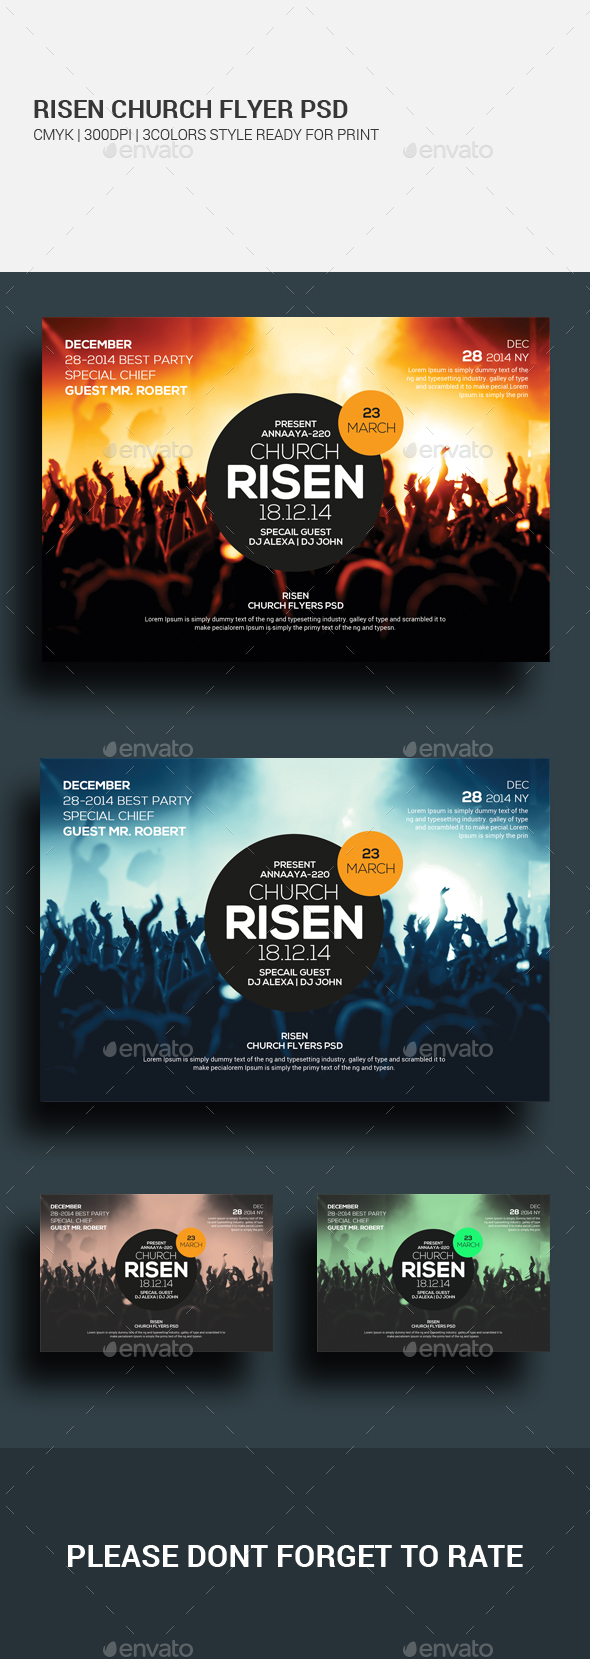 Easter Sunday Church Template Set - Church Flyers